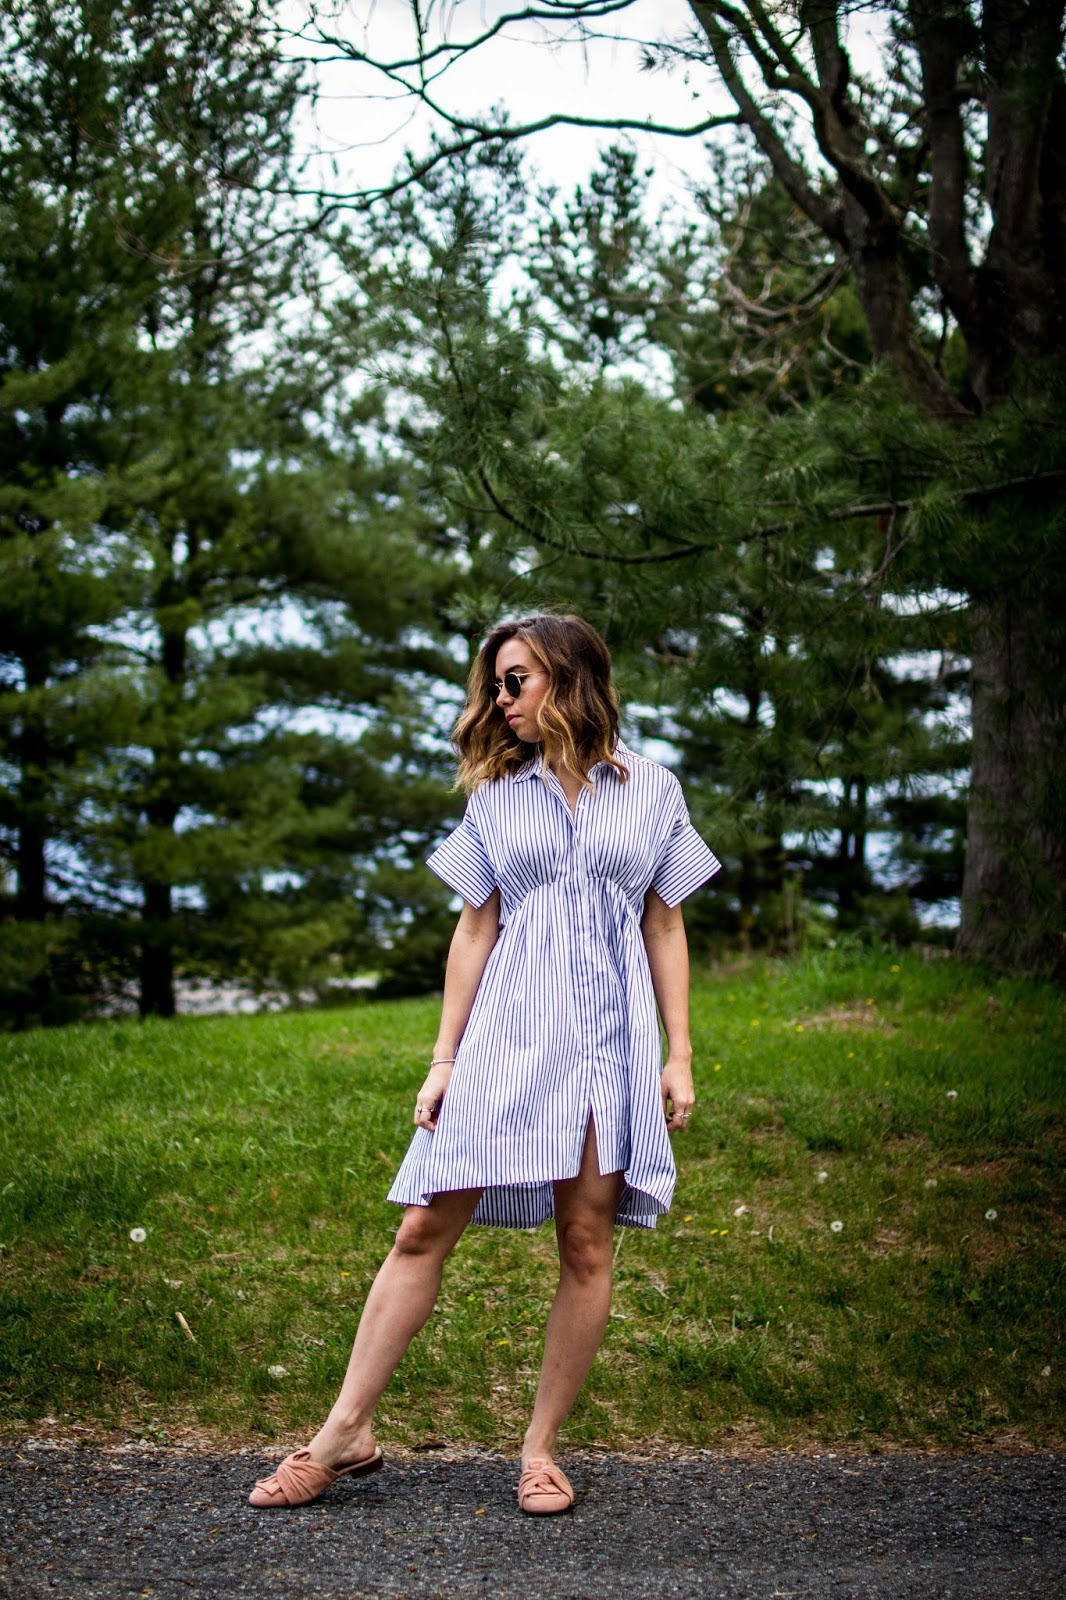 Shirtdress-dcblogger-A-Viza-Style-casual-spring-style-victoria-beckham-target-shirtdress-bylot-louise-et-cie